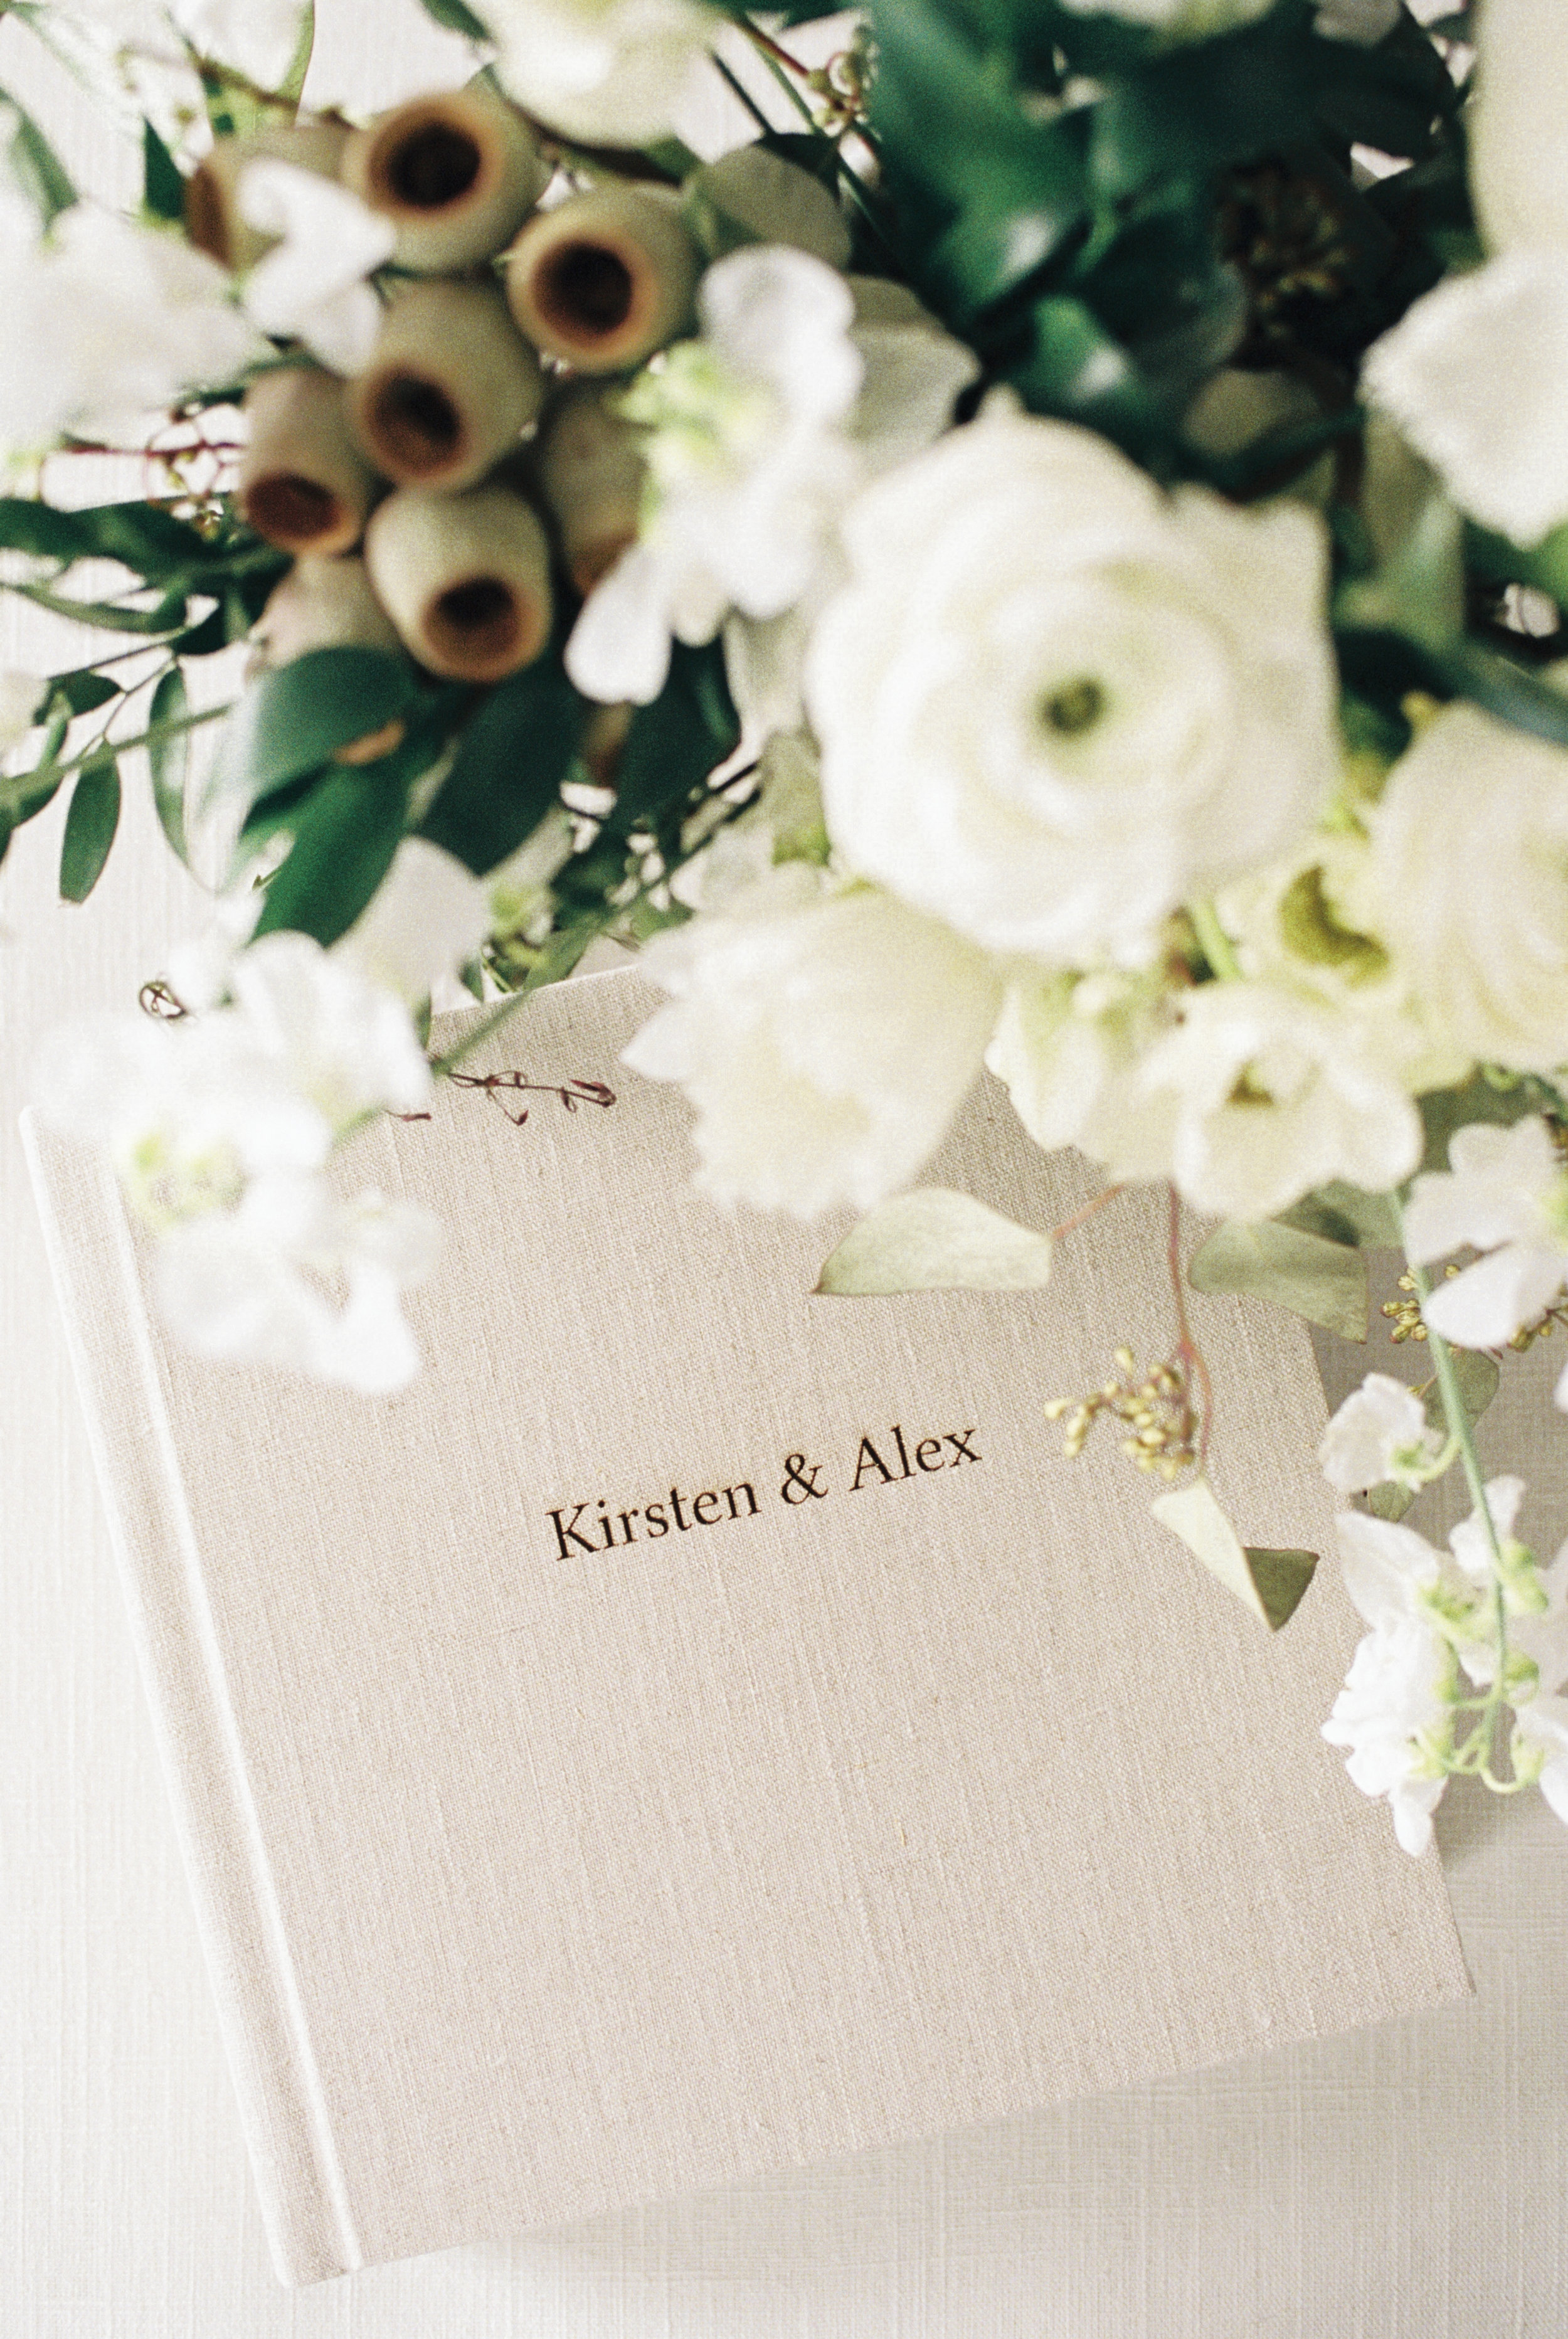 Boston Wedding Photographer Lynne Reznick Photography Heirloom Linen Wedding Album with Engraving